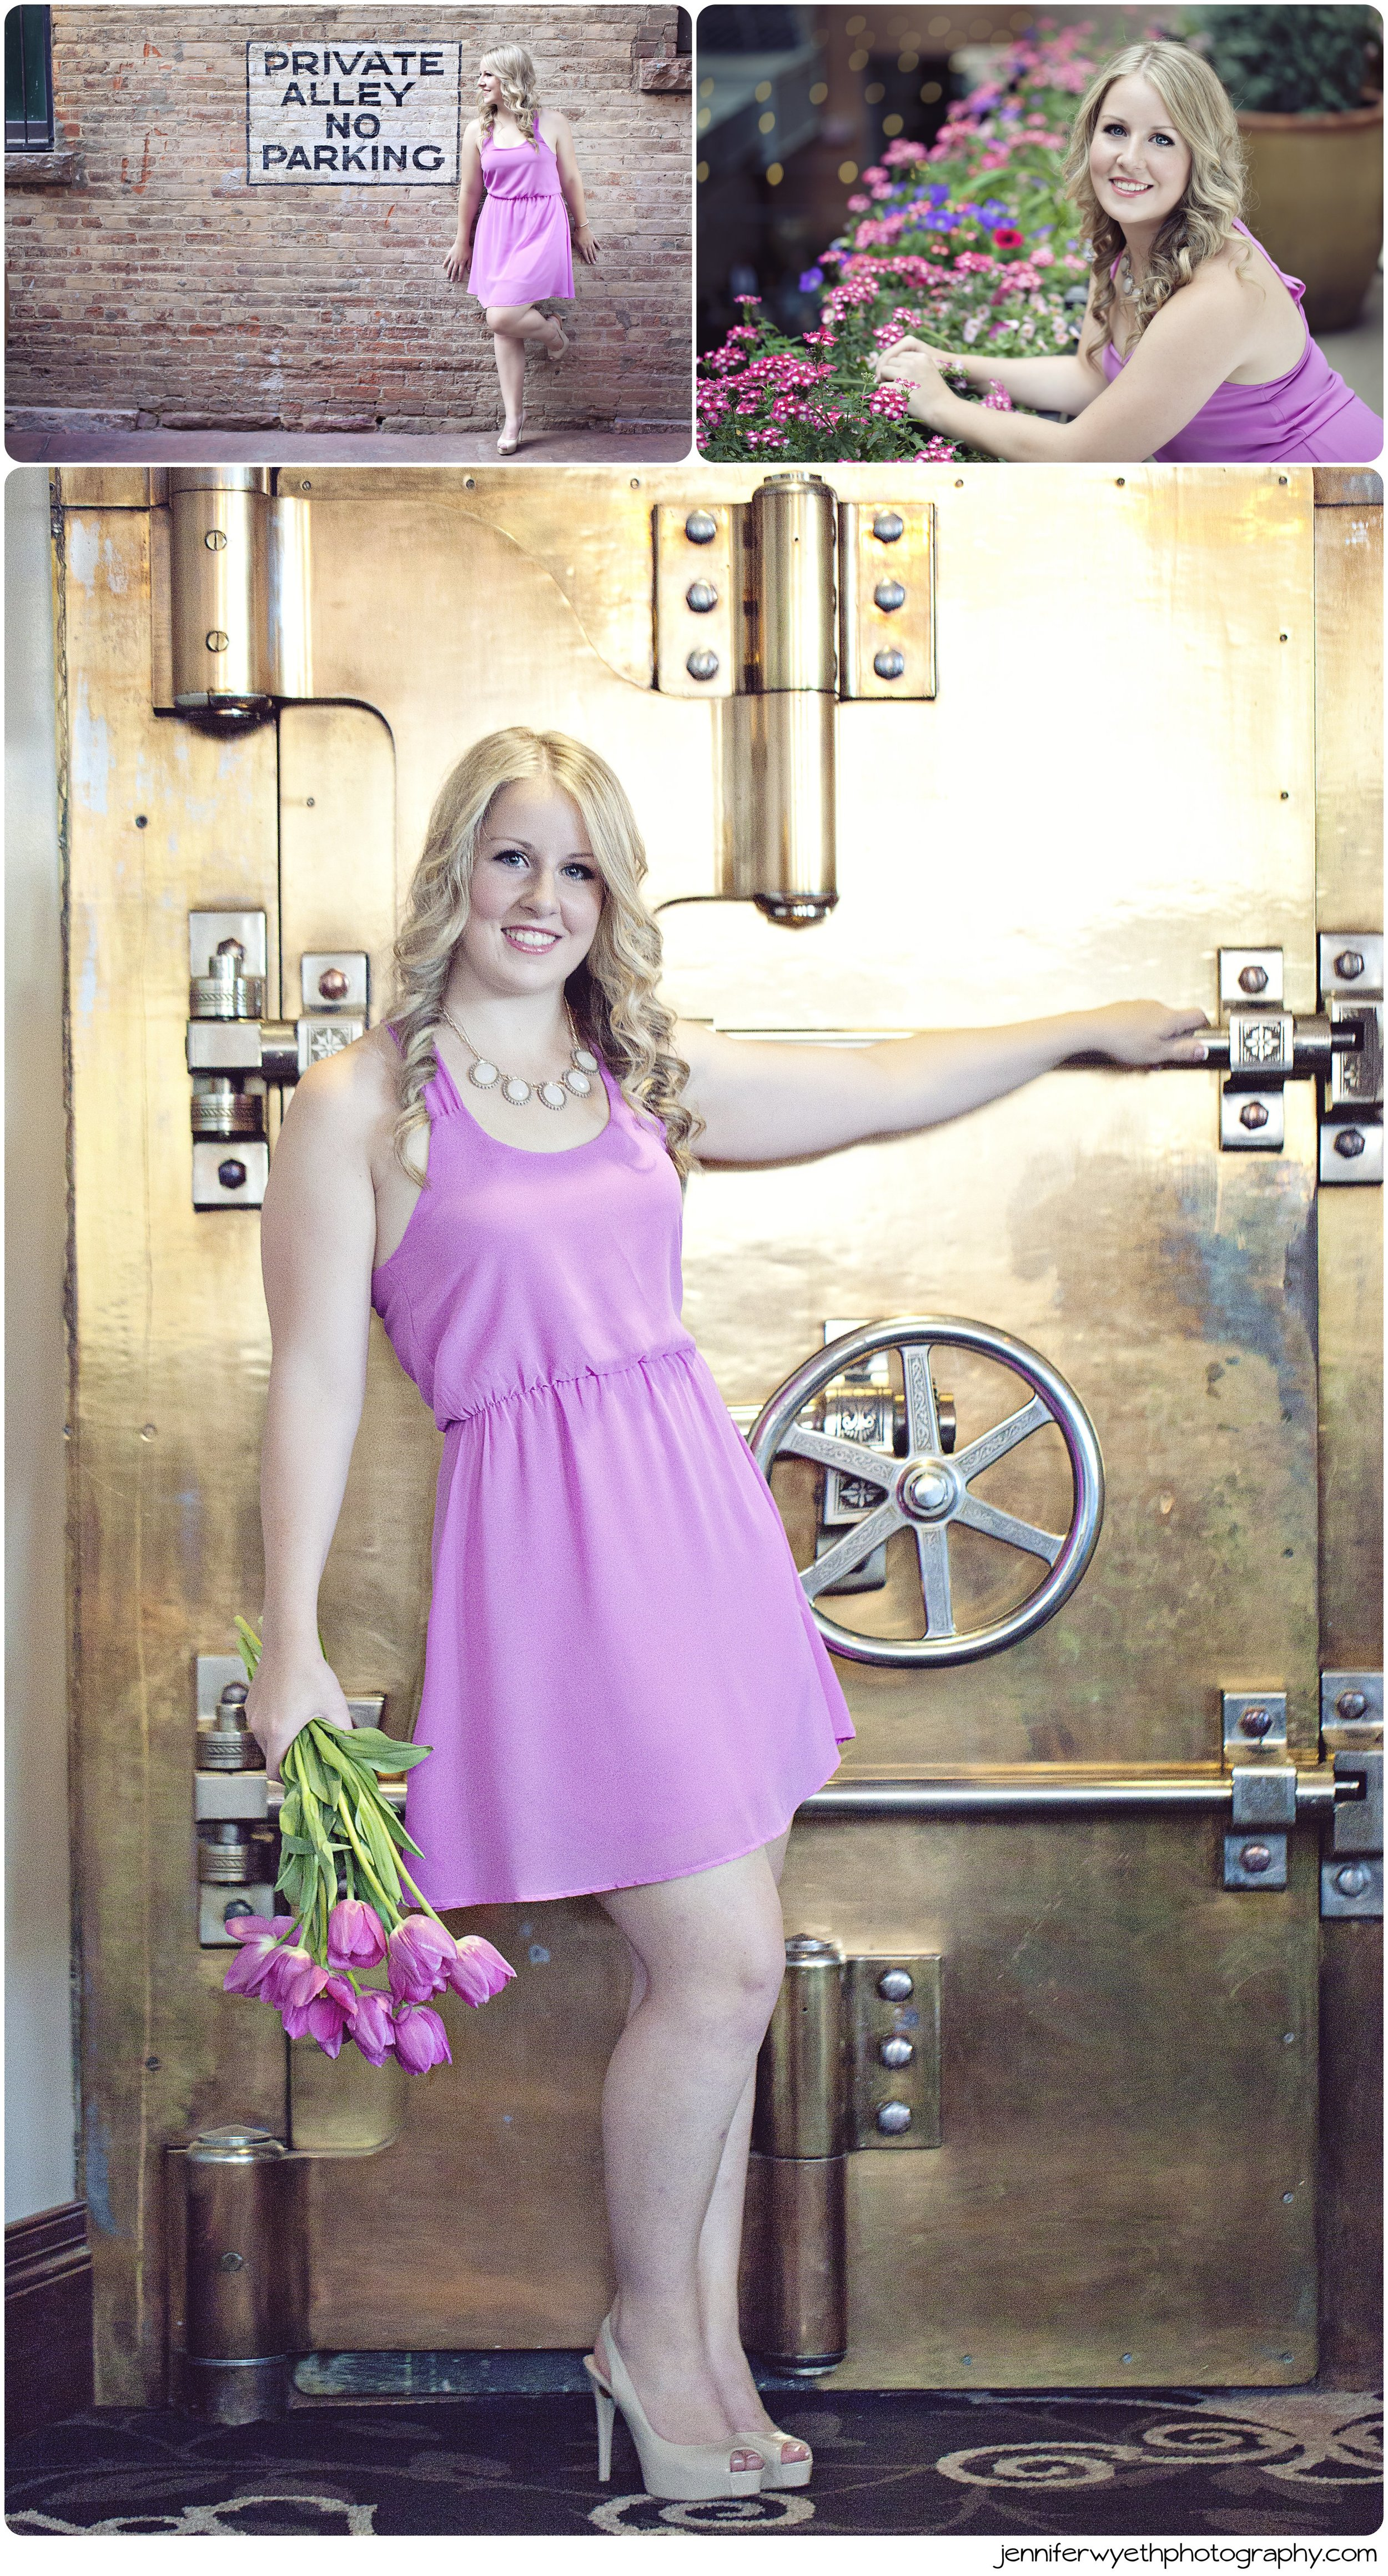 gold hotel safe serves as railing for blond girl in purple dress with flowers